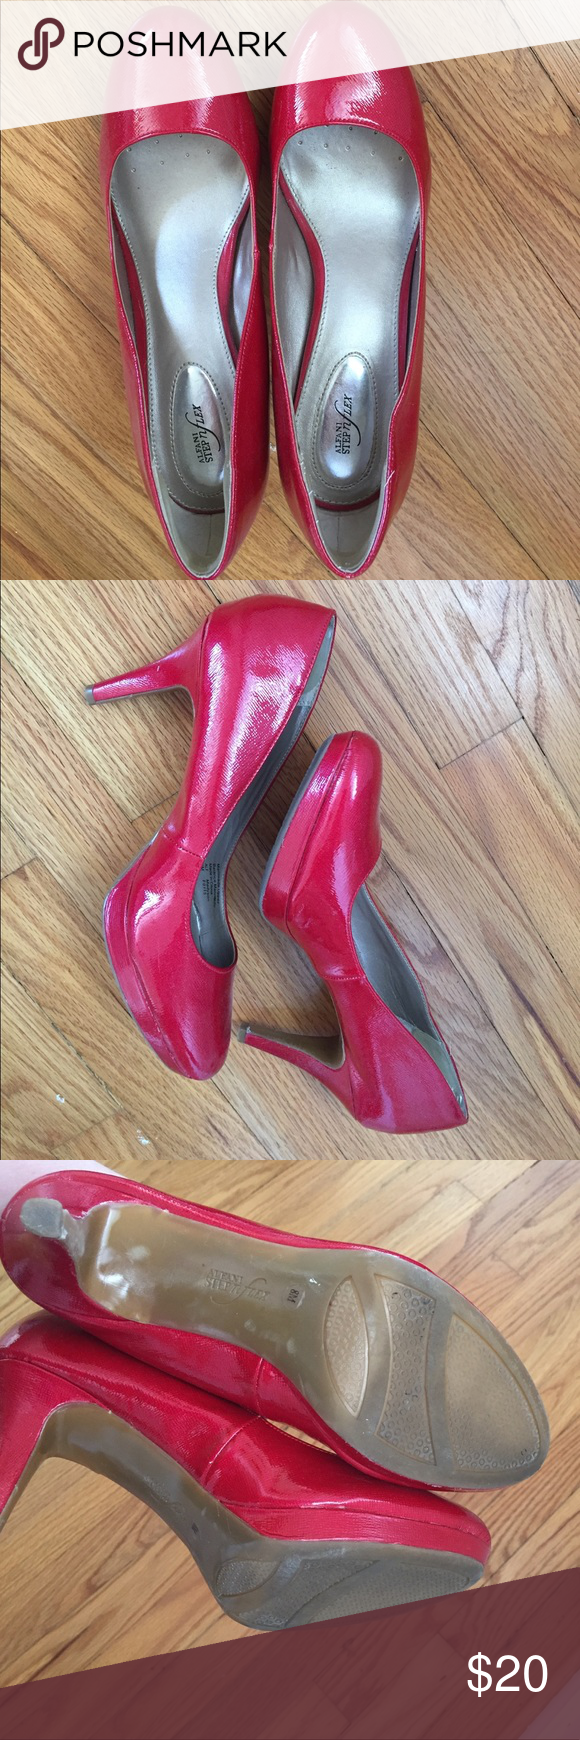 EUC red patent pumps. Alfani Step N Flex. Size 8M EUC. Worn once to a wedding and danced the night away, so shoes carry good vibes in their souls/soles. A fun and pretty shoe to make a statement. Alfani Shoes Heels